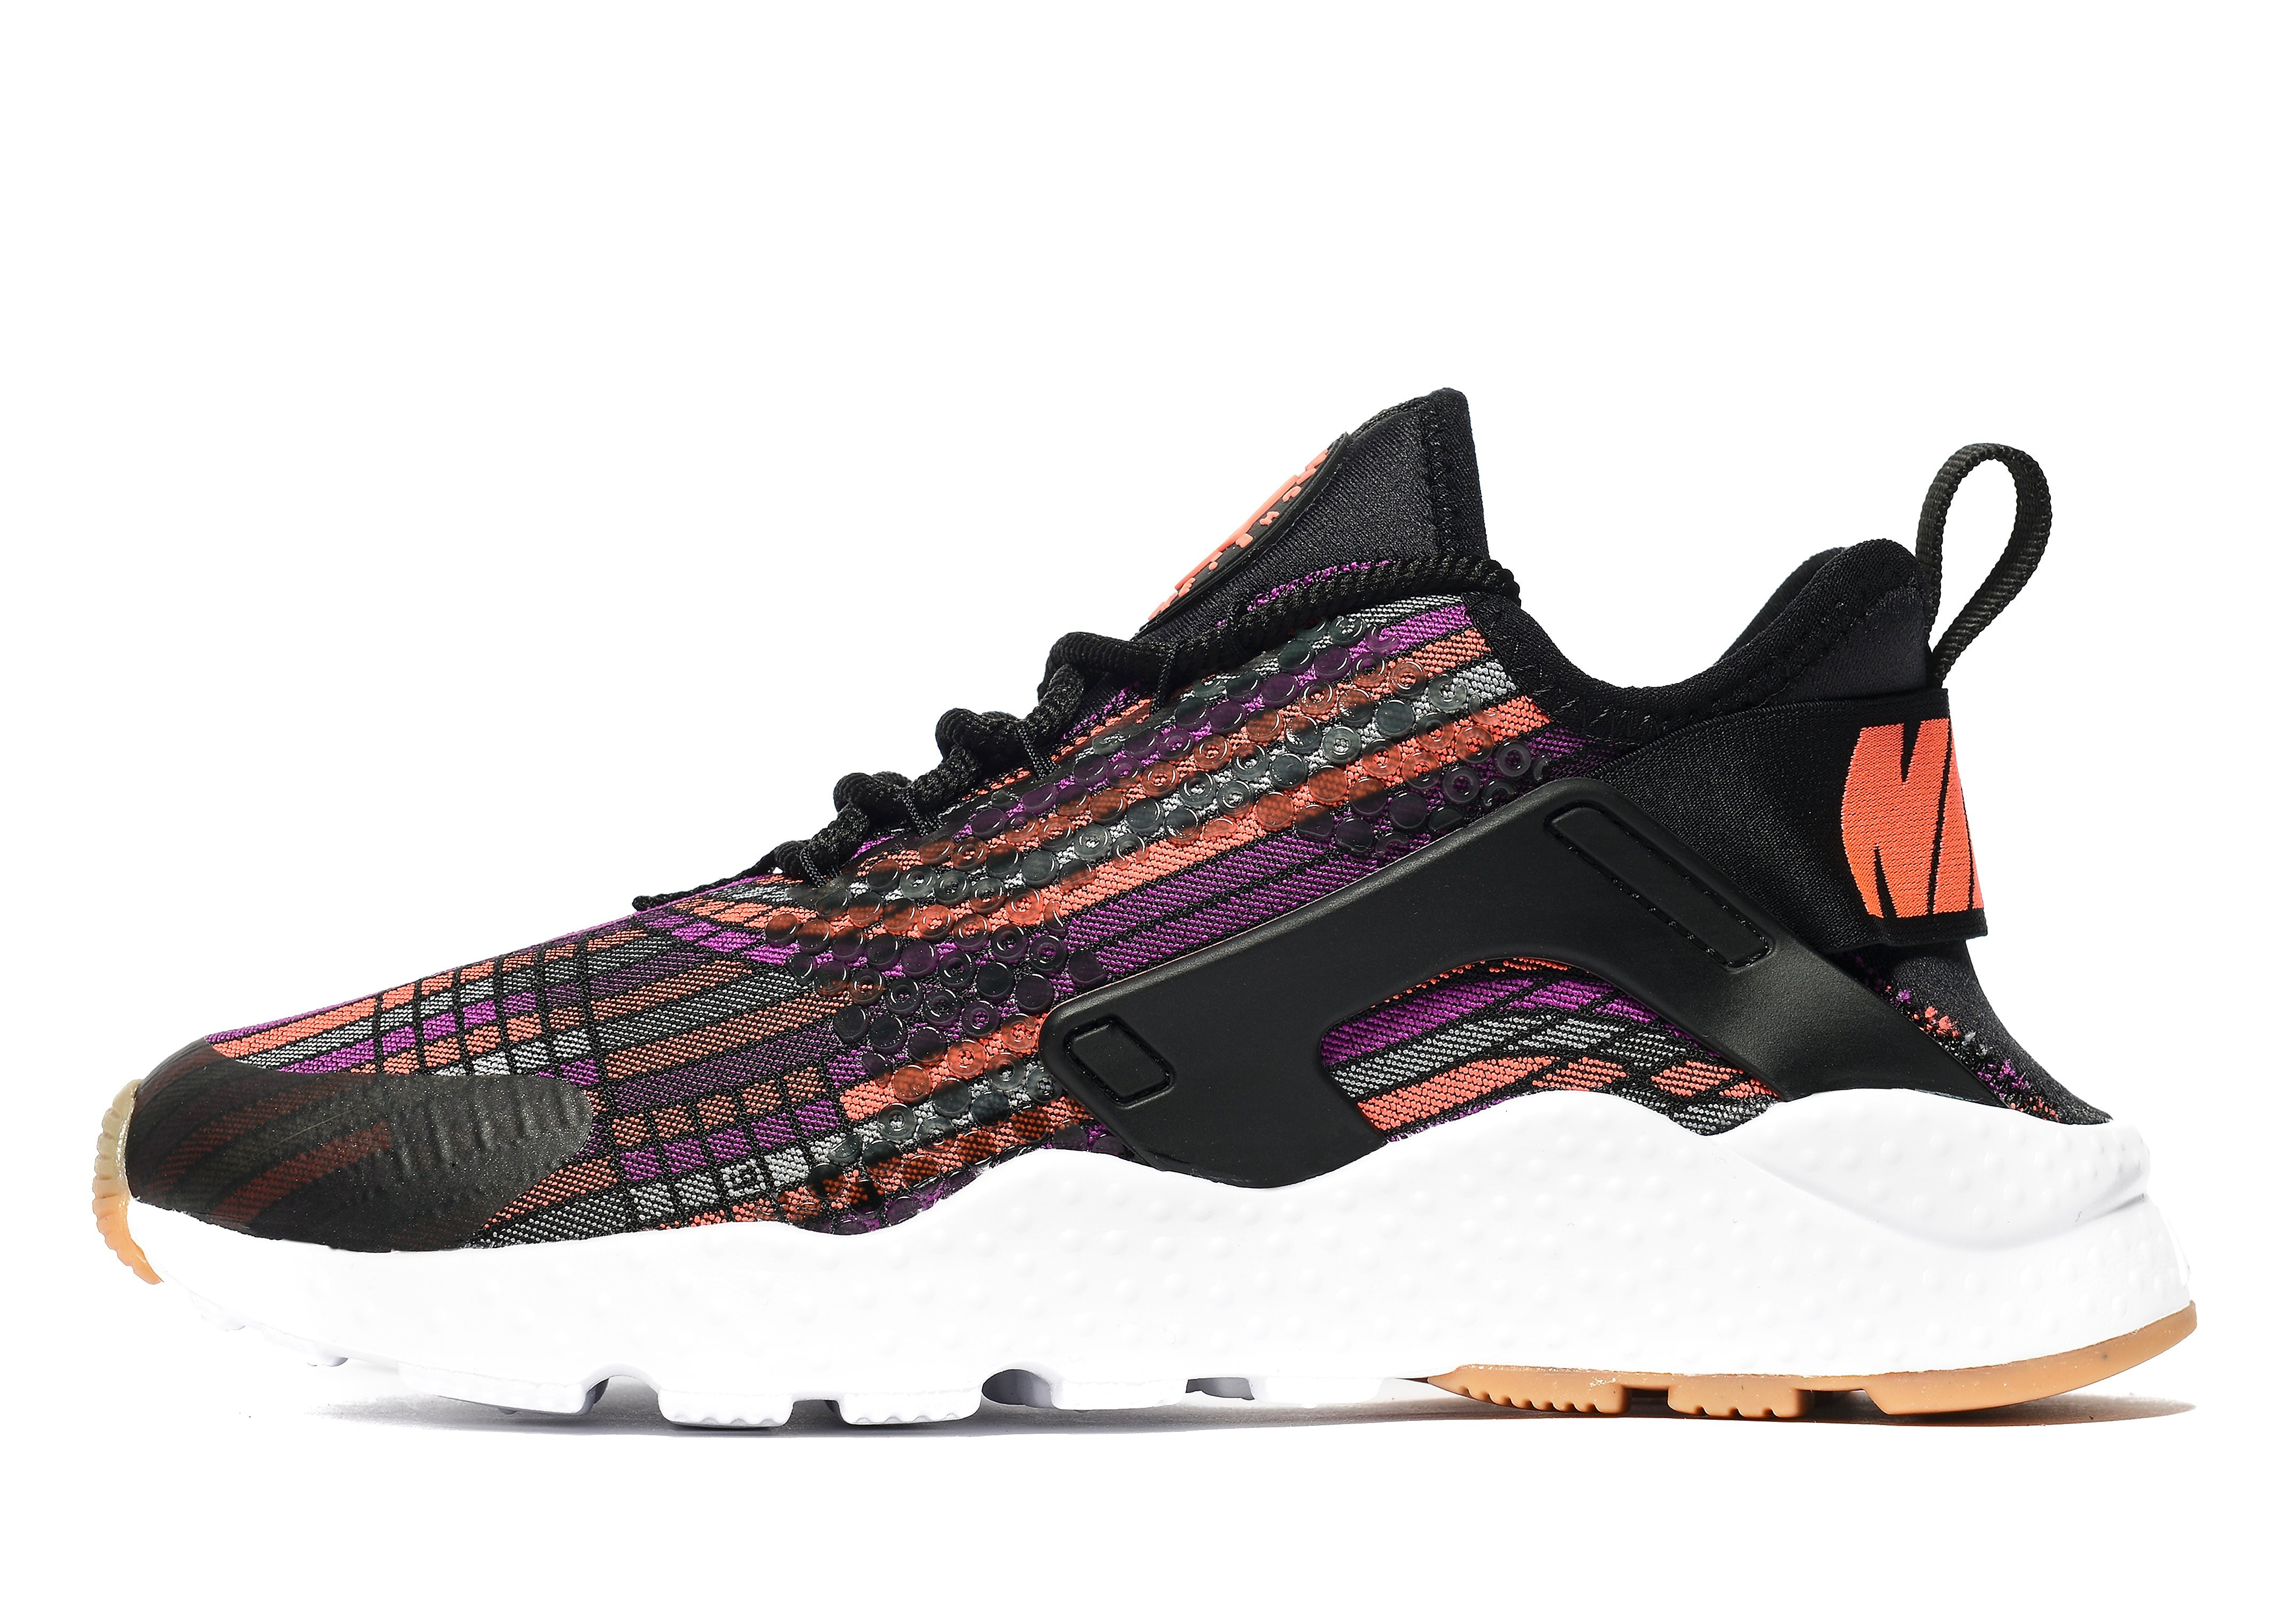 Nike Beautiful x Powerful Air Huarache Jacquard Women's